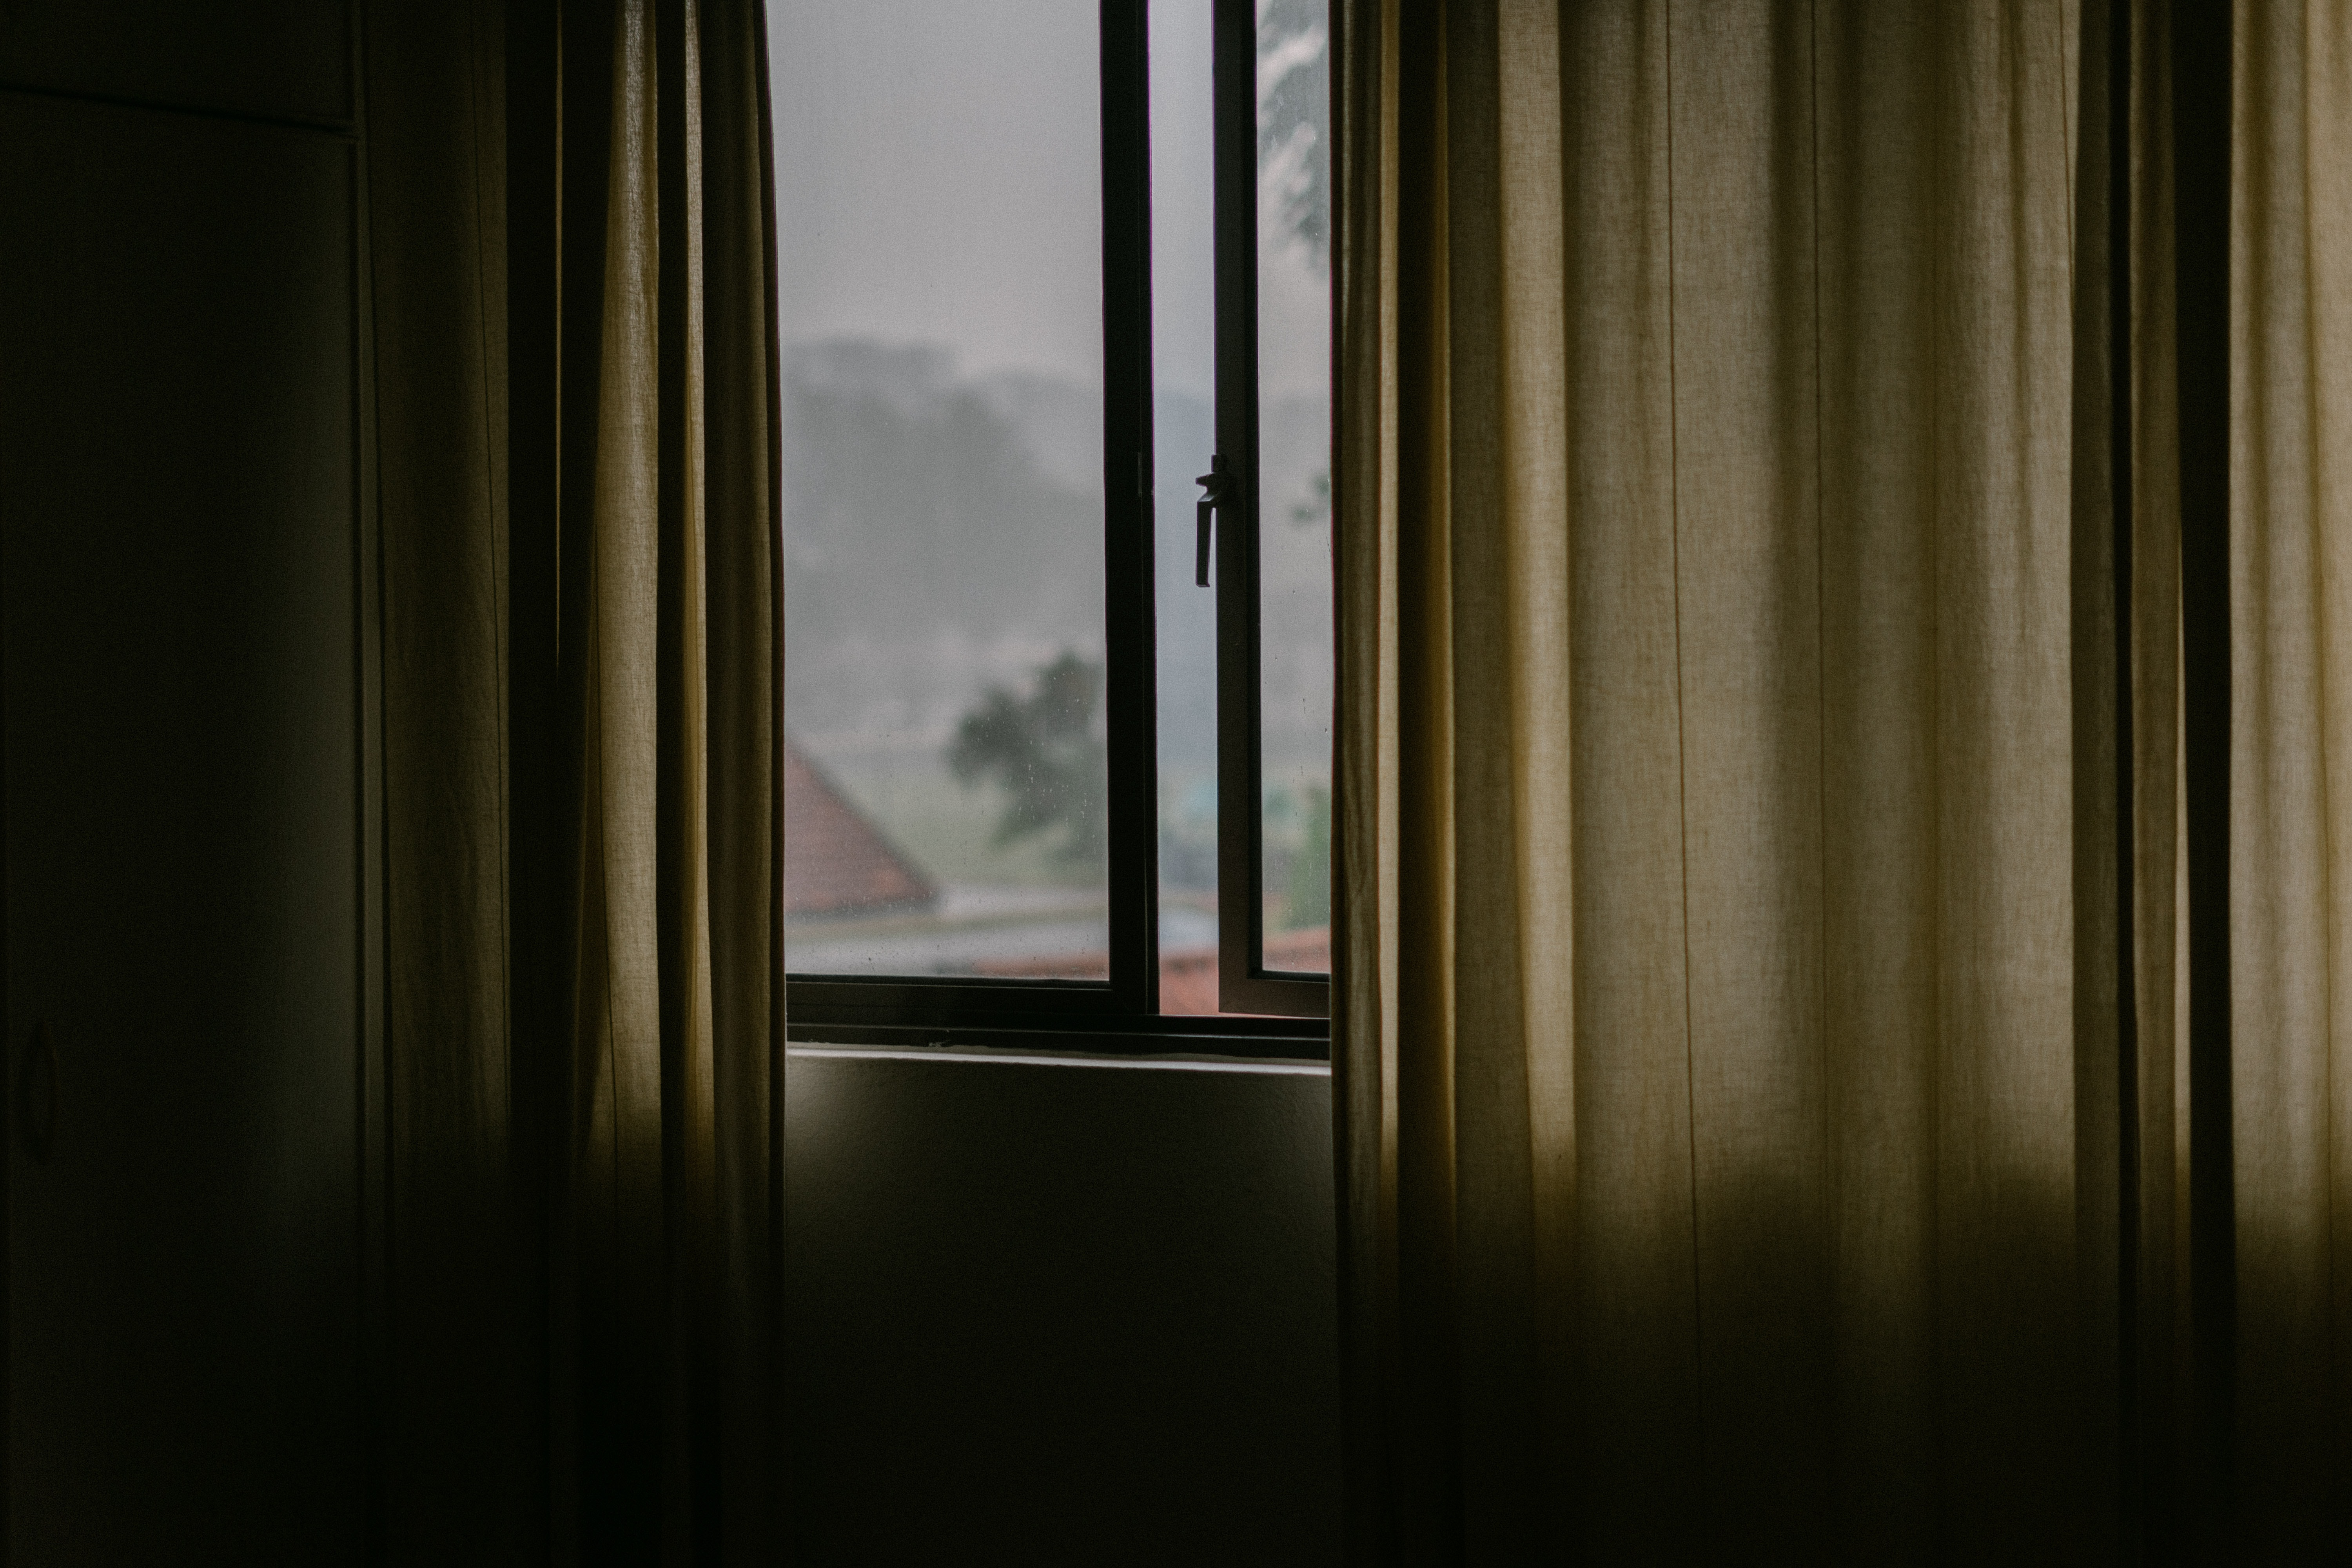 black metal framed glass window open with brown curtain